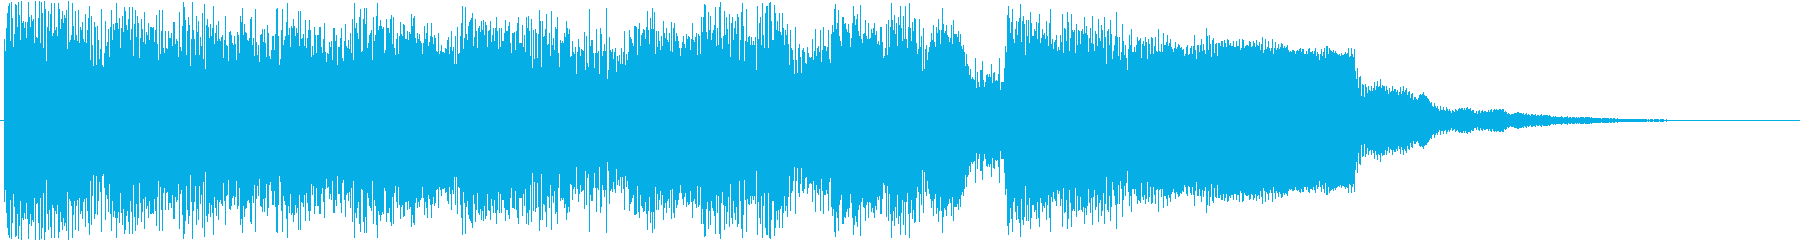 Cute jingle for recorder and piano's reproduced waveform